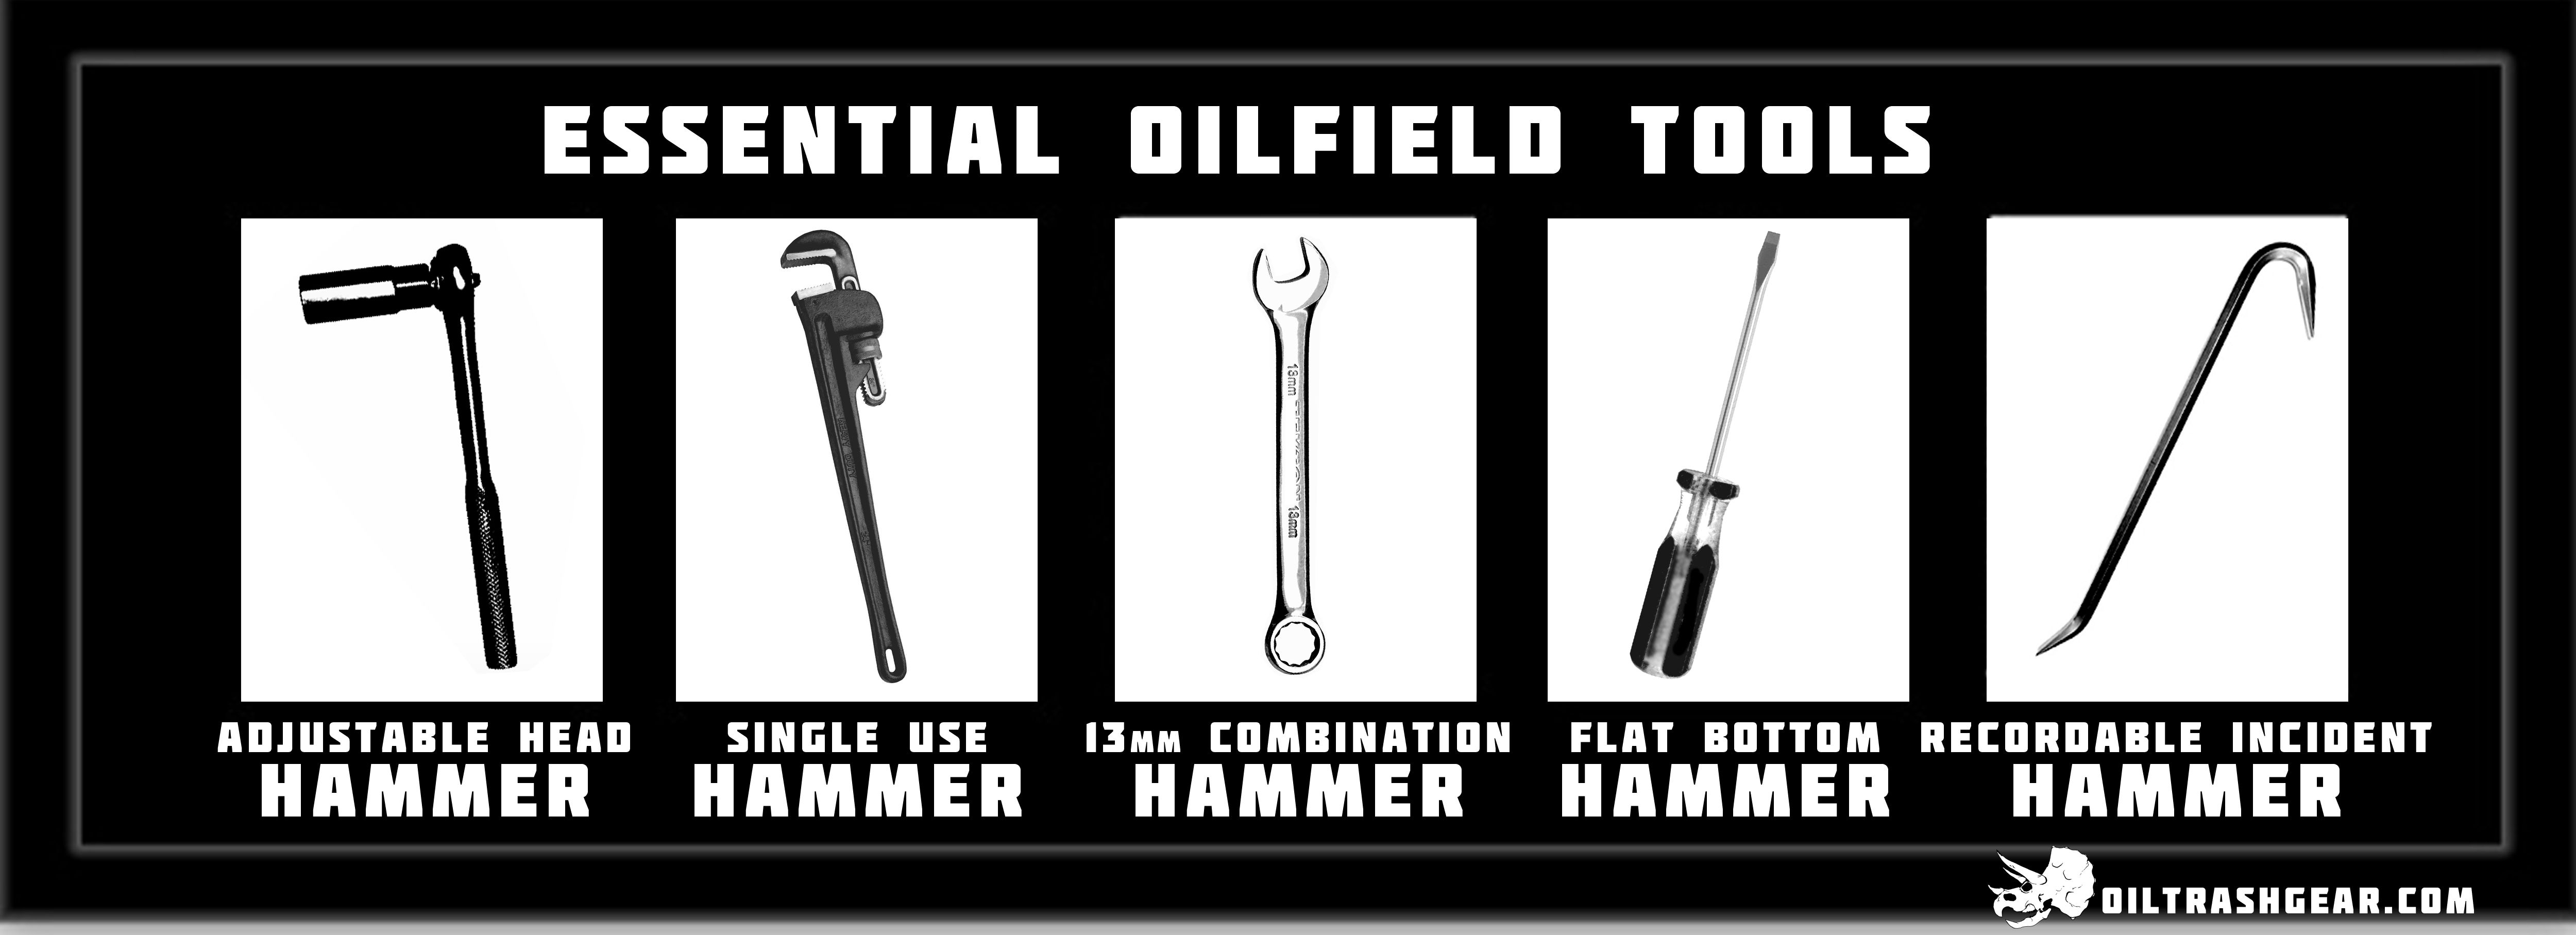 The Five Essential Oilfield Tools... Because everything is